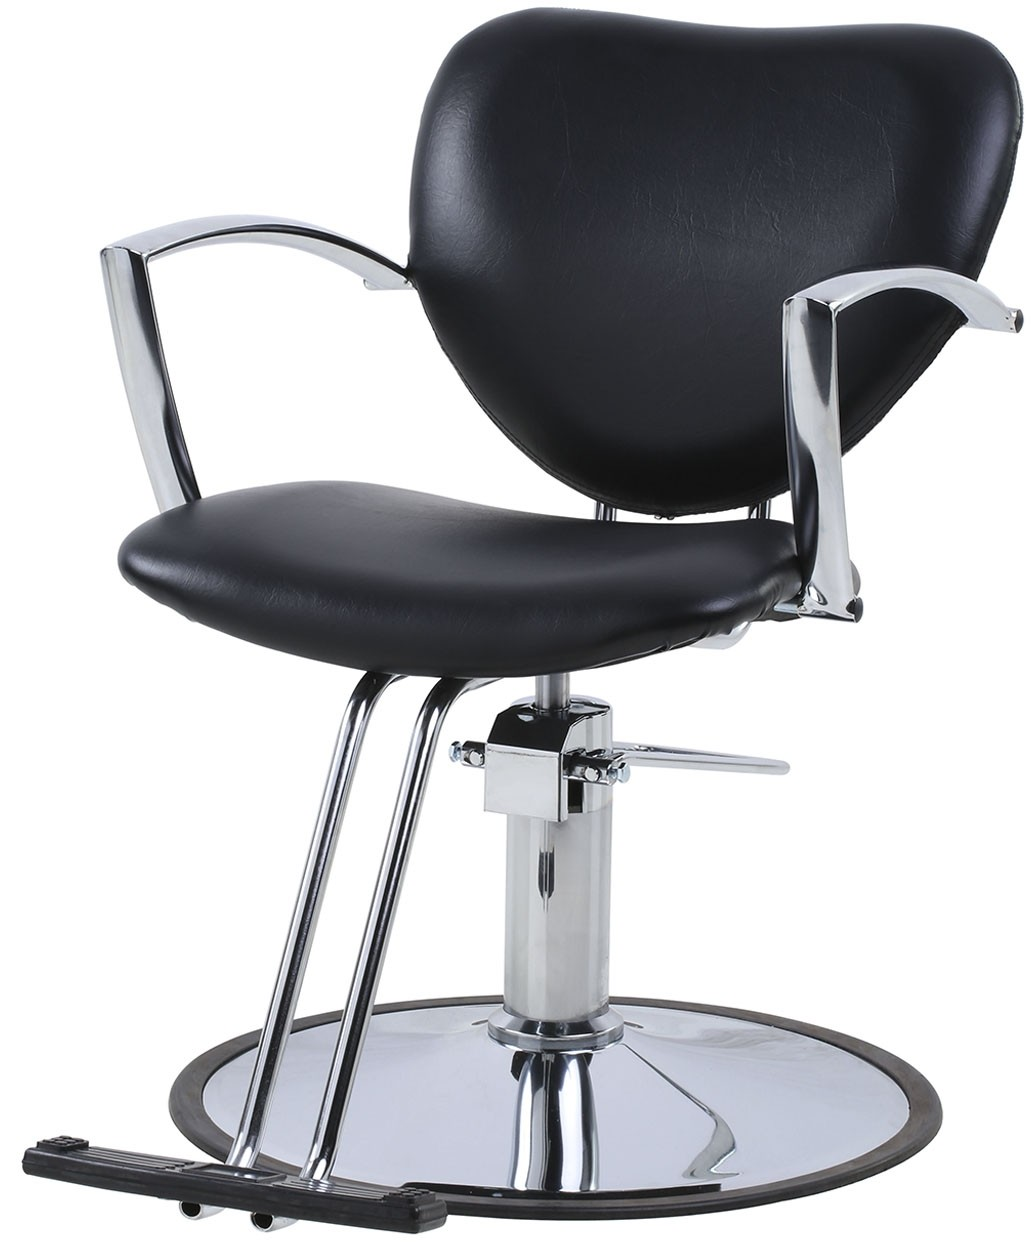 Salon Styling Chairs: Hairdresser & Hair Styling Chairs